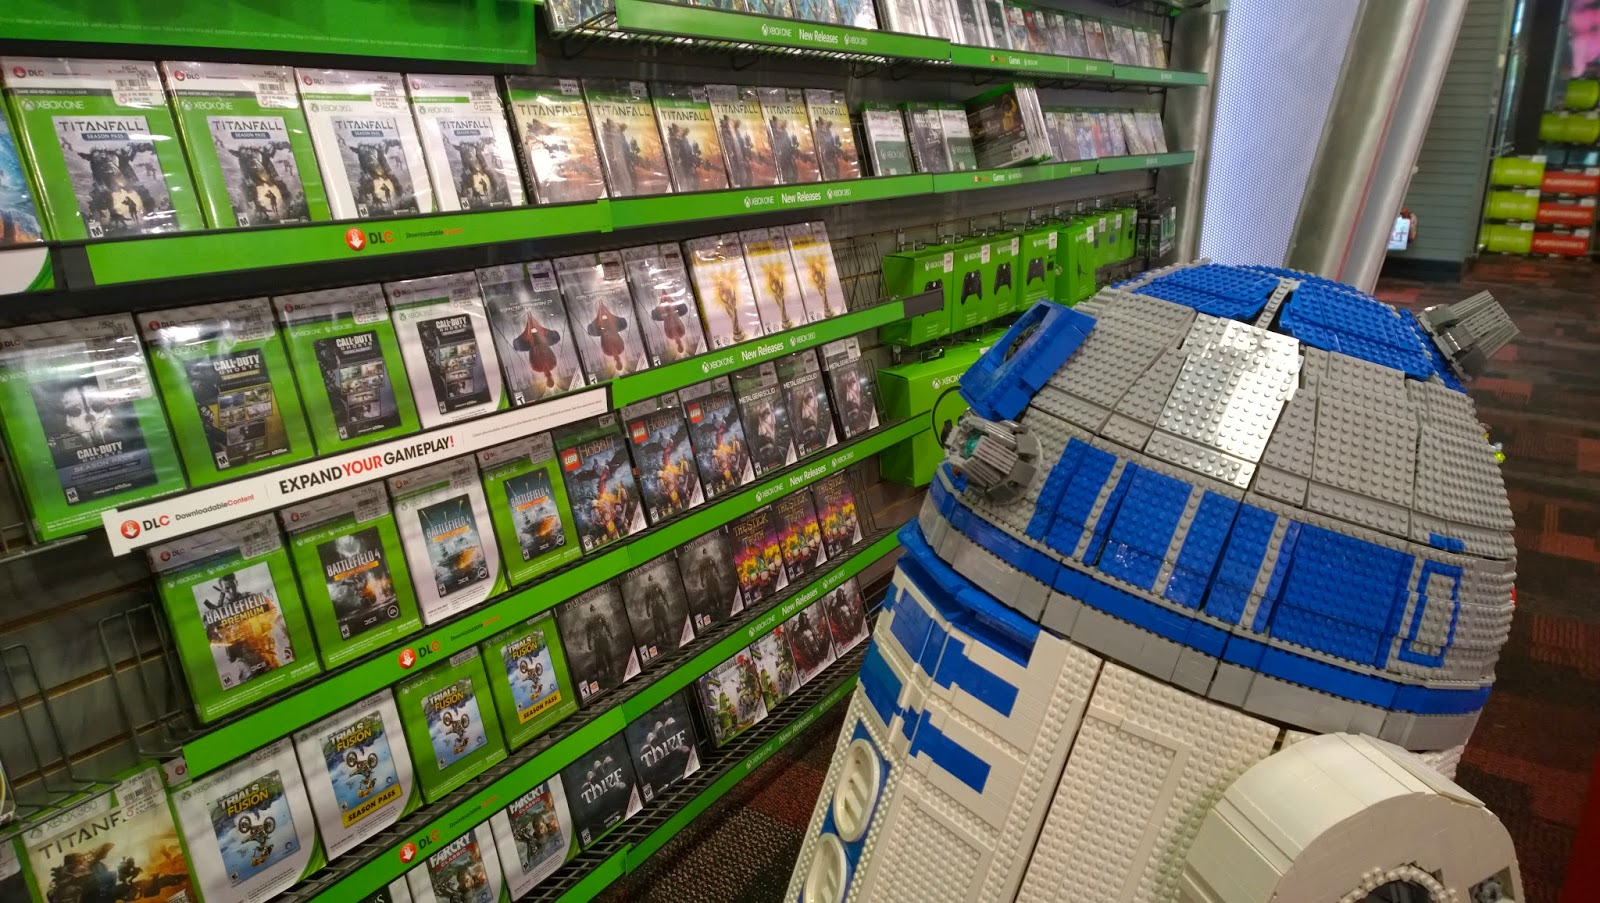 L3-G0 the Lego R2D2 perusing a shelf of XBox One games